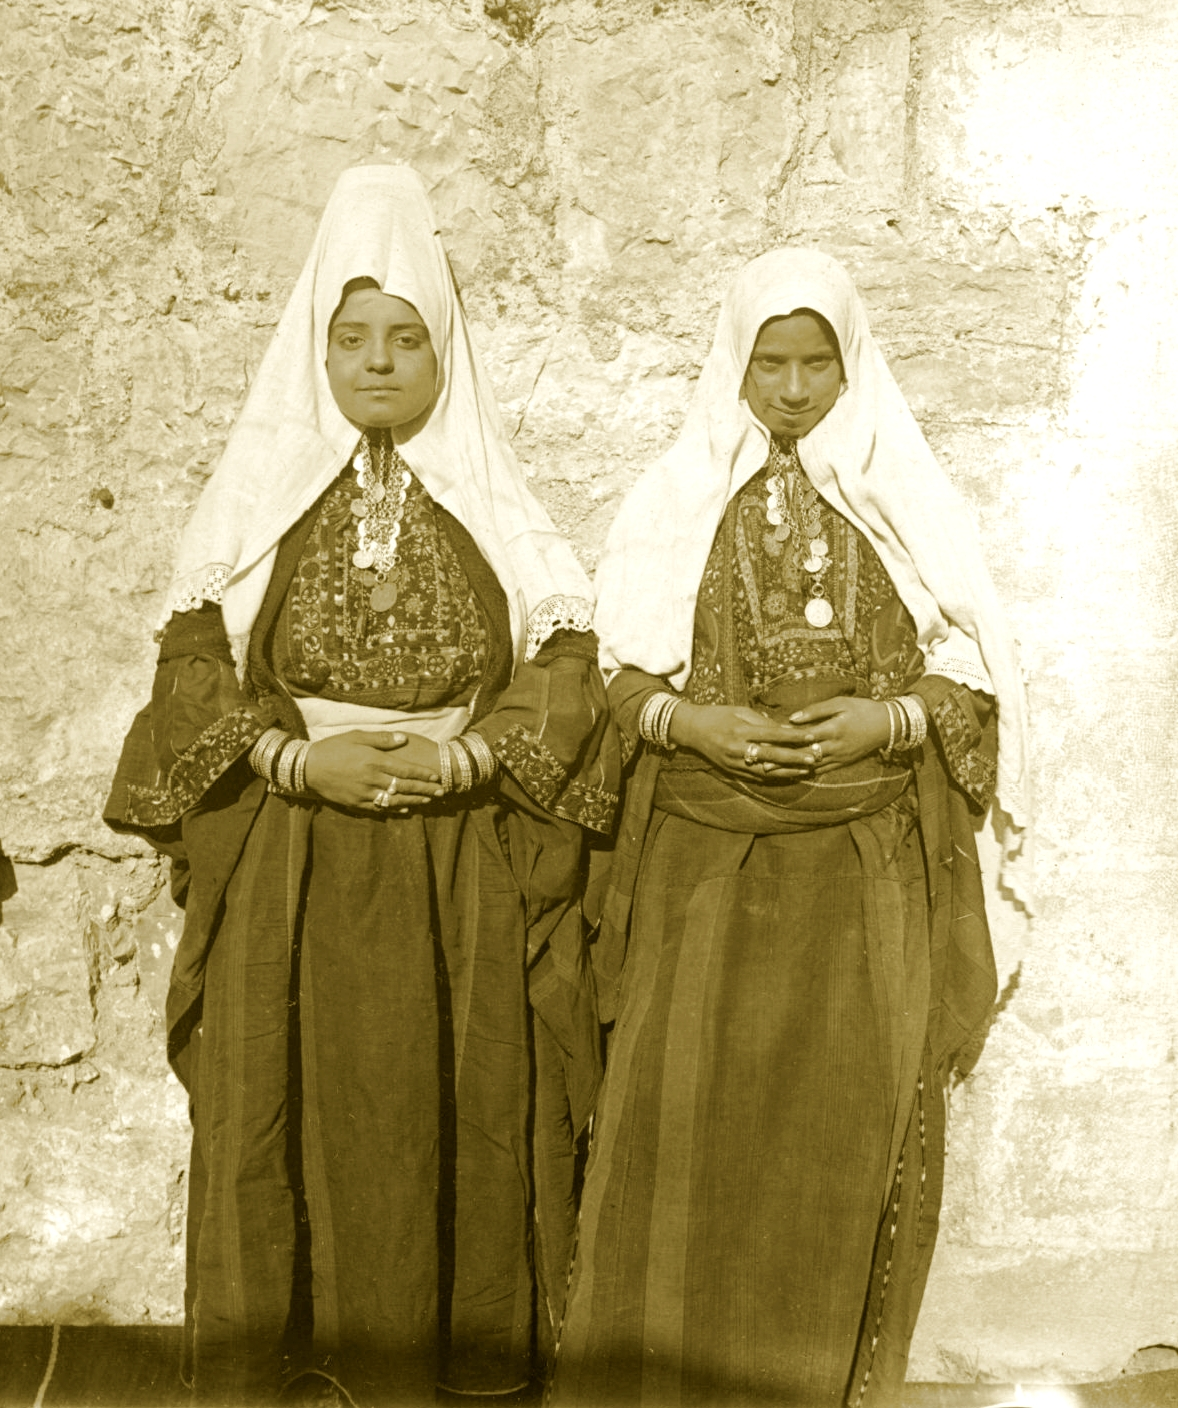 Bethlehem - بيت لحم : Women of Bethlehem 158 (late 19th, early 20th c.) - Married and single (Per Reem Ackall)